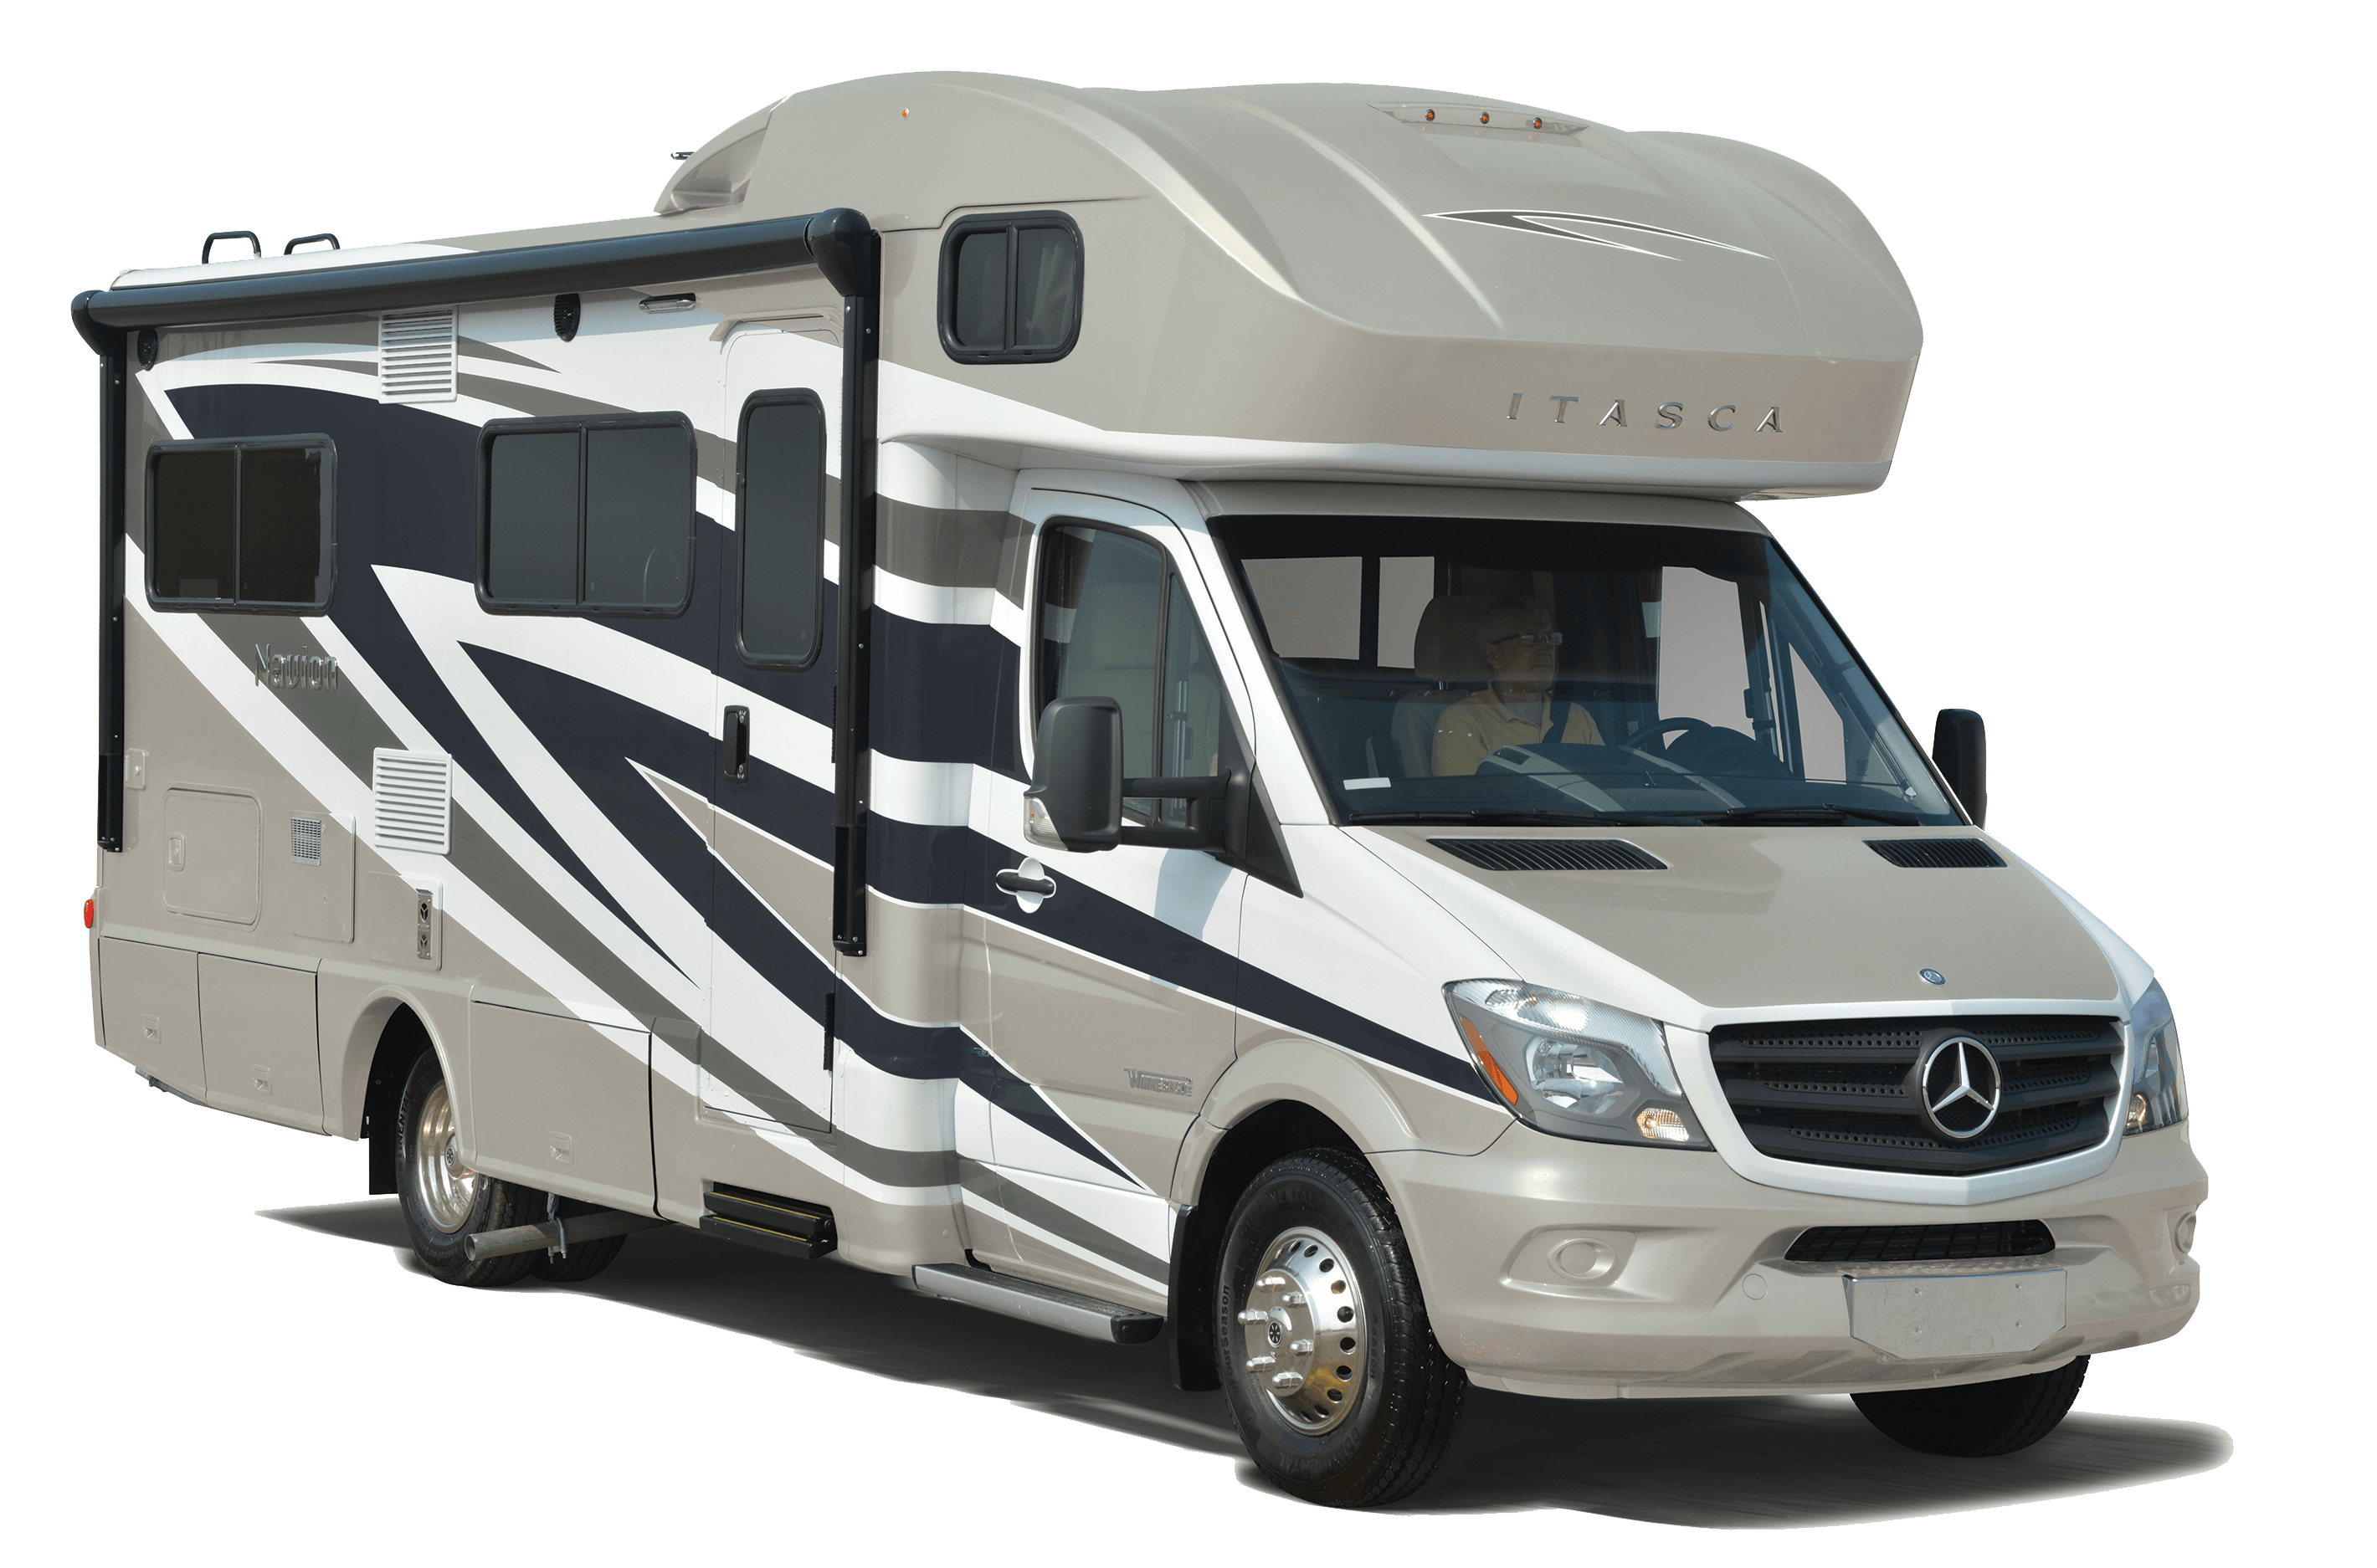 Navion Class C Motor Home General Rv Center